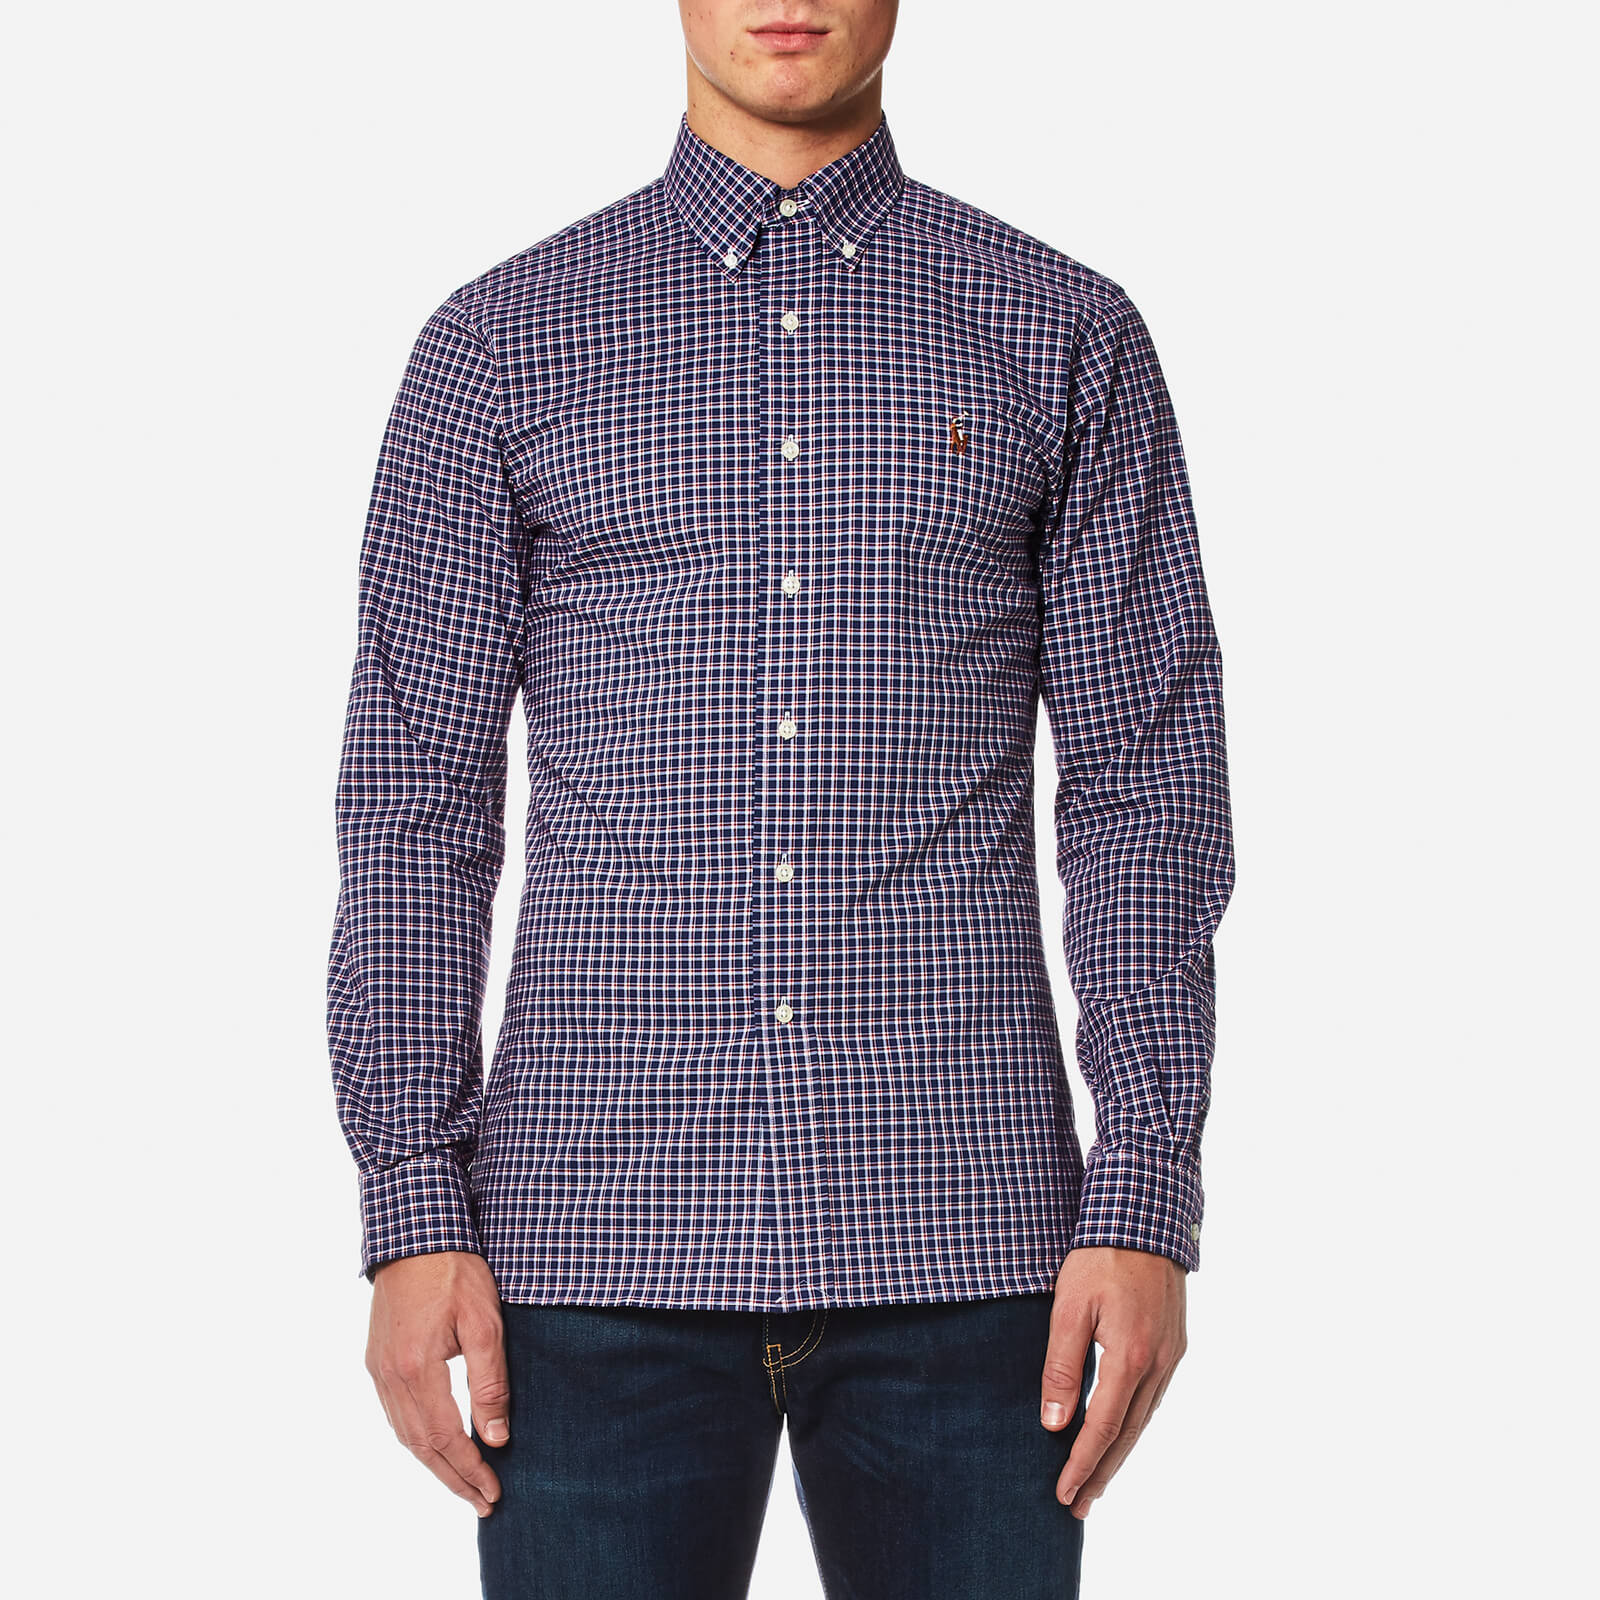 a86f840e Polo Ralph Lauren Men's Slim Fit Poplin Check Shirt - Navy/Red - Free UK  Delivery over £50